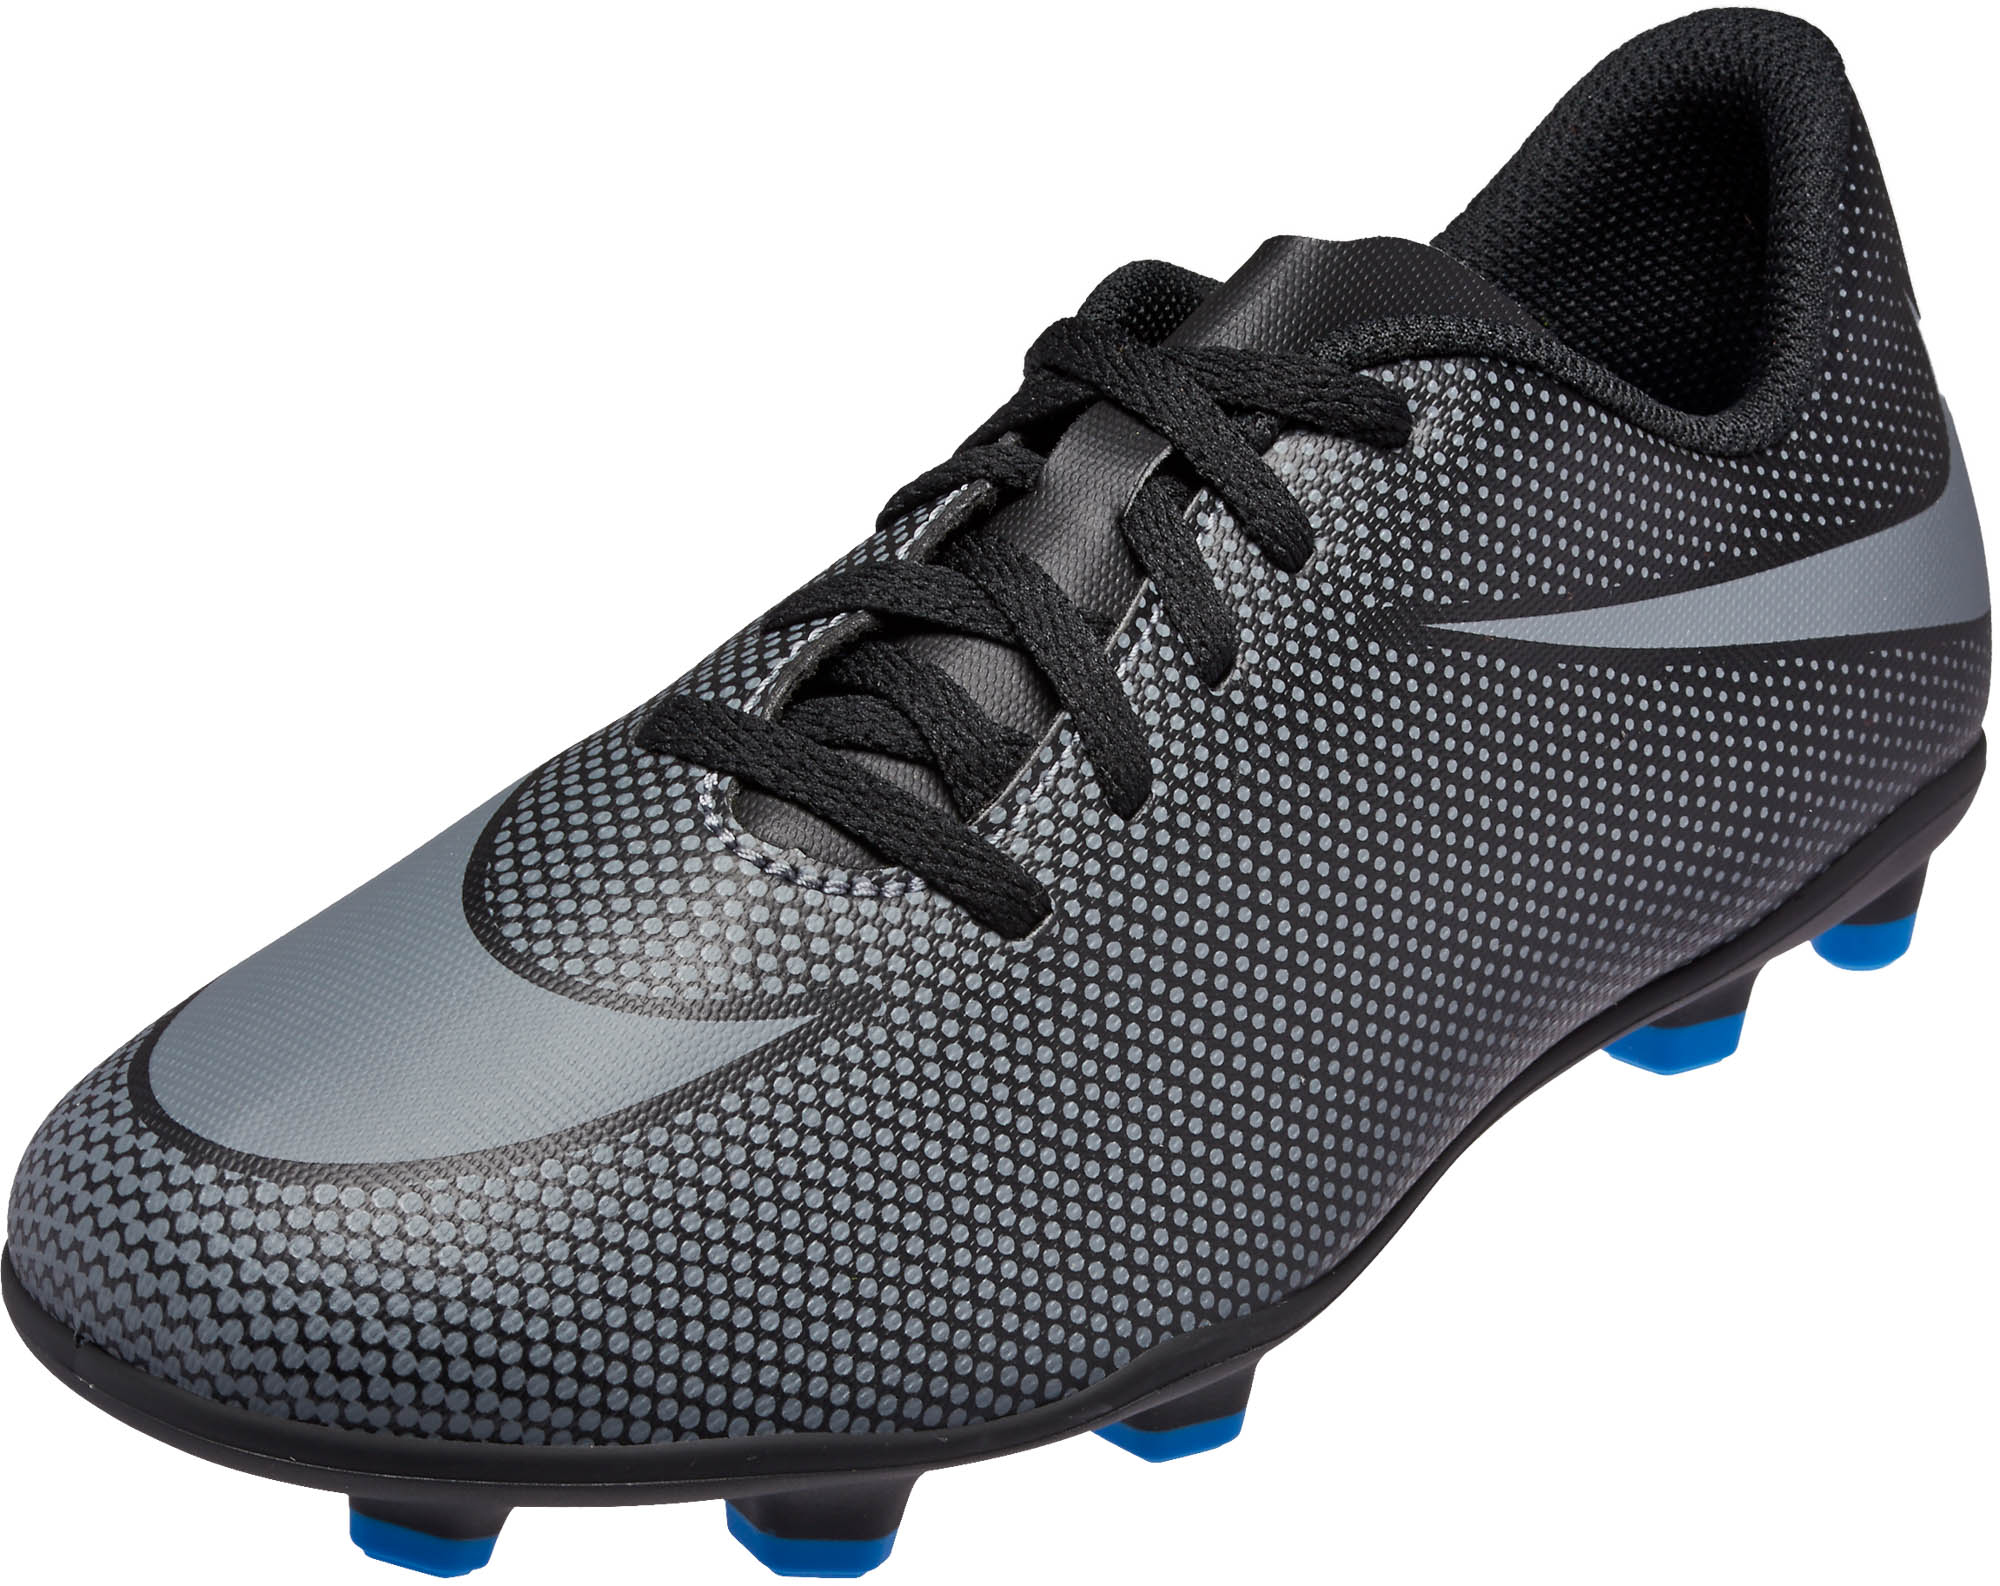 ee0a1db1e8 Nike Kids Bravata II FG - Youth Bravata Soccer Shoes